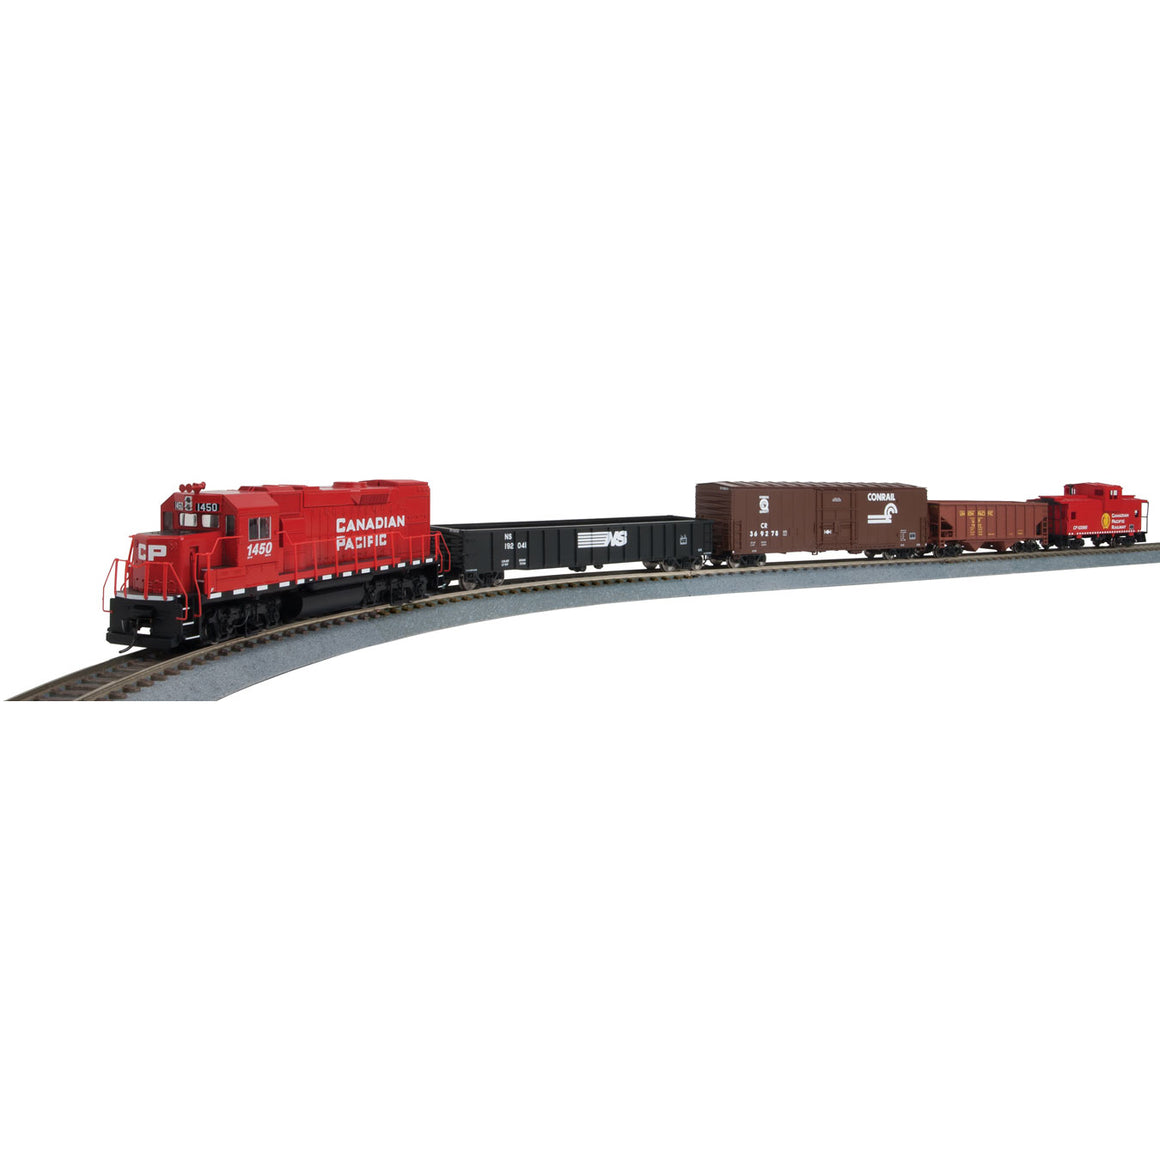 HO Scale: Train Set - WiFlyer Express - DCC & Sound - Canadian Pacific